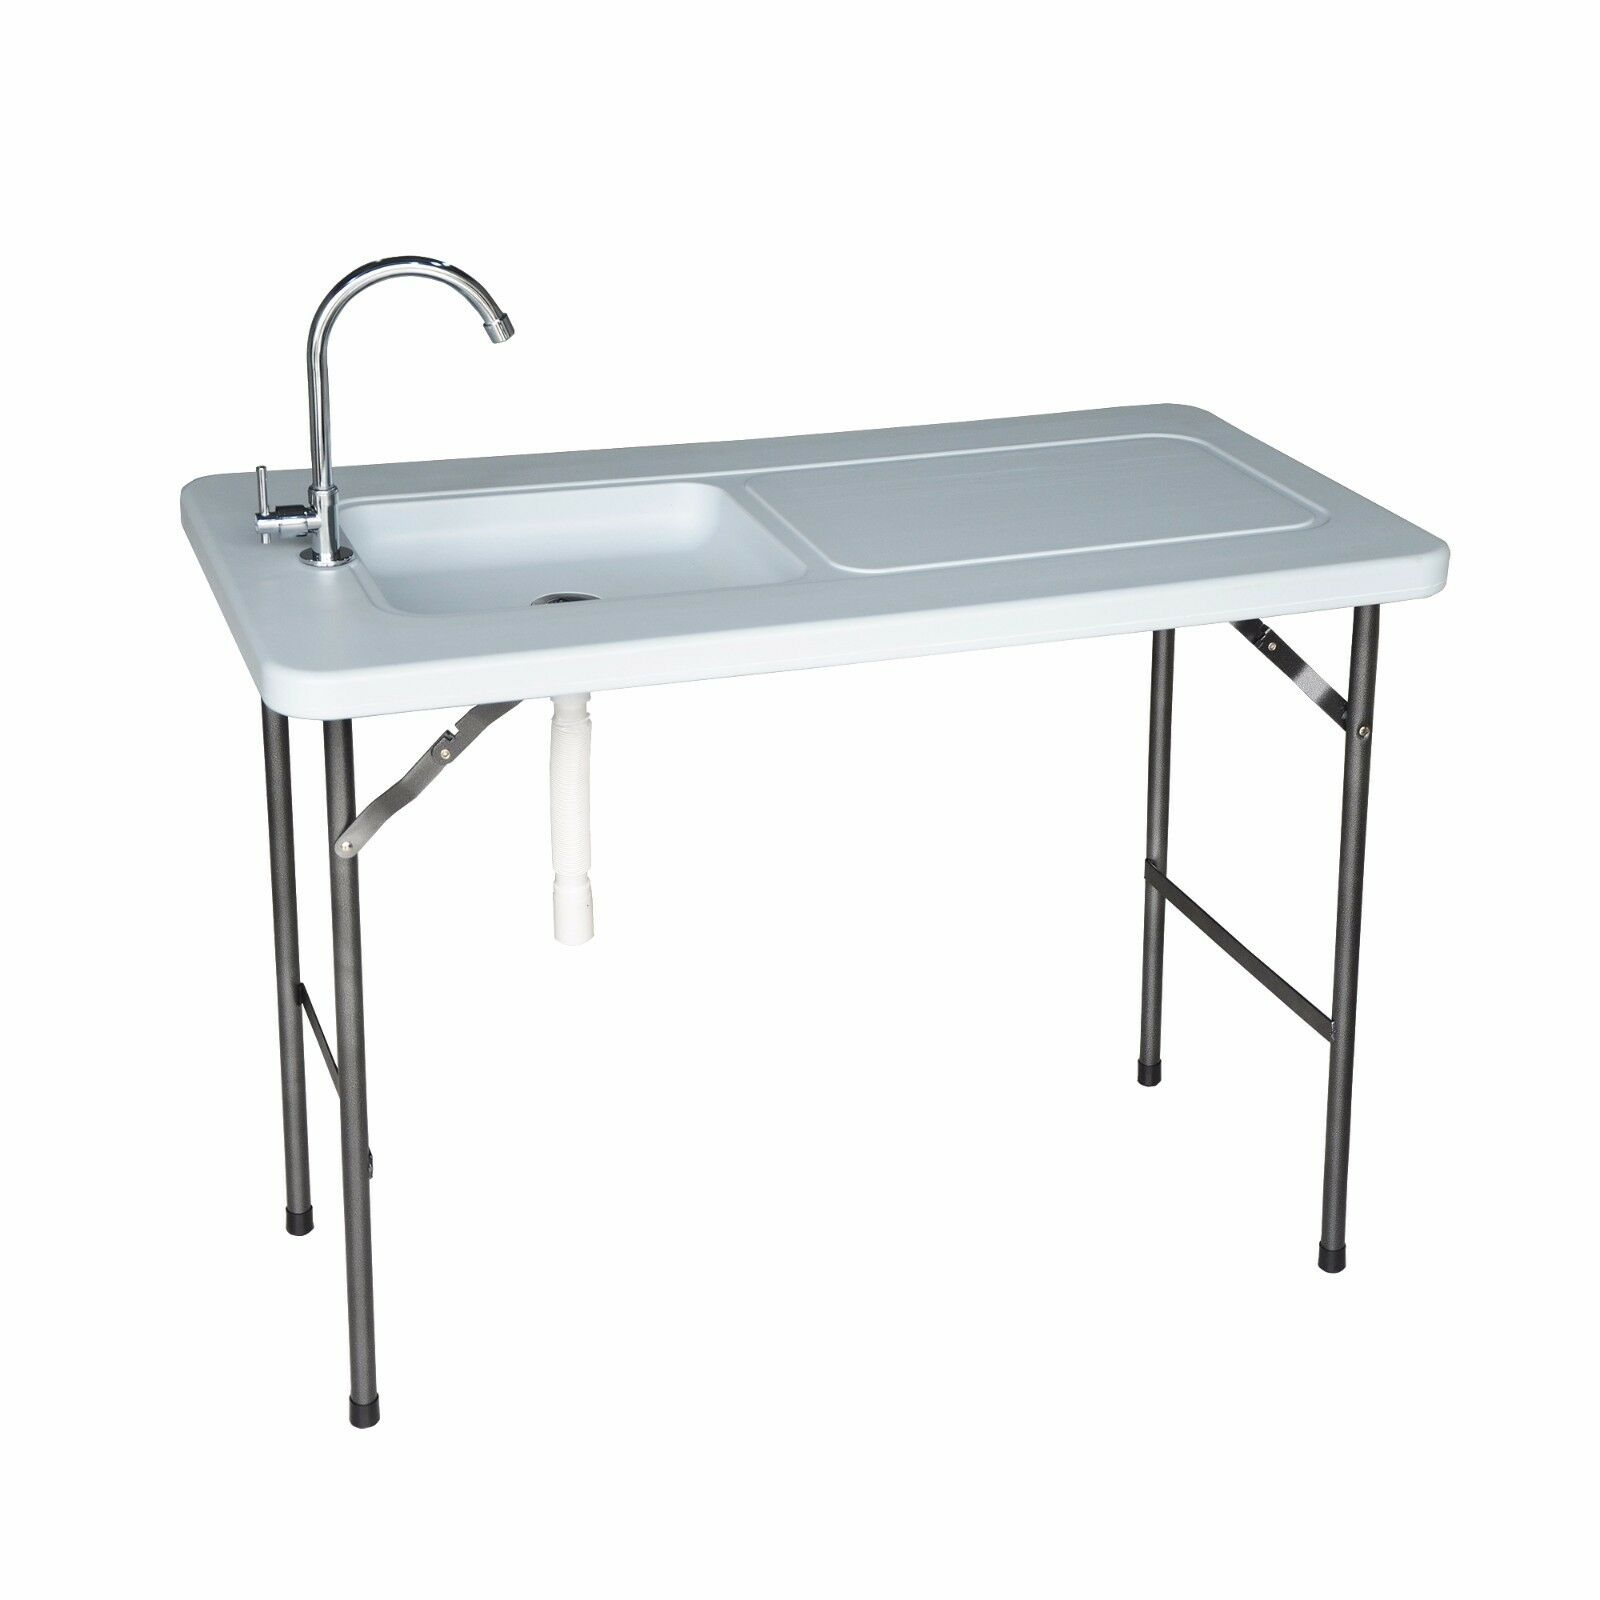 High Desert Multipurpose Folding Fish & Game Cleaning Utility Table with Faucet